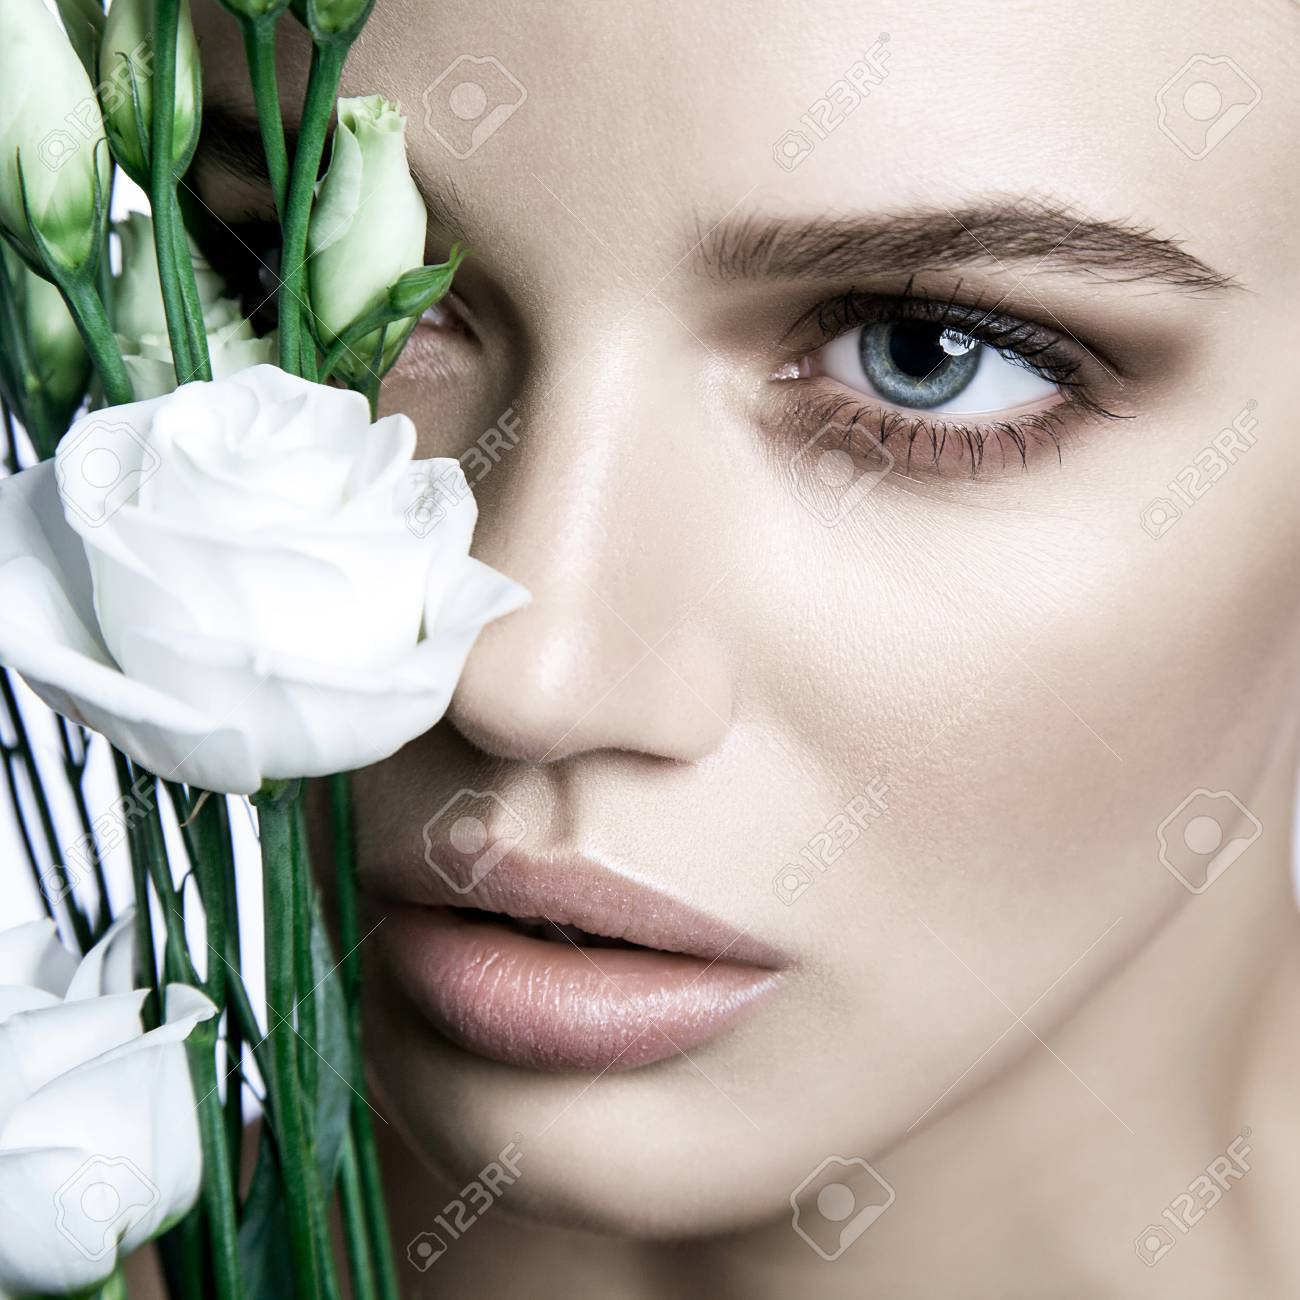 Calm Beauty Fashion Model Woman Face Portrait With White Rose